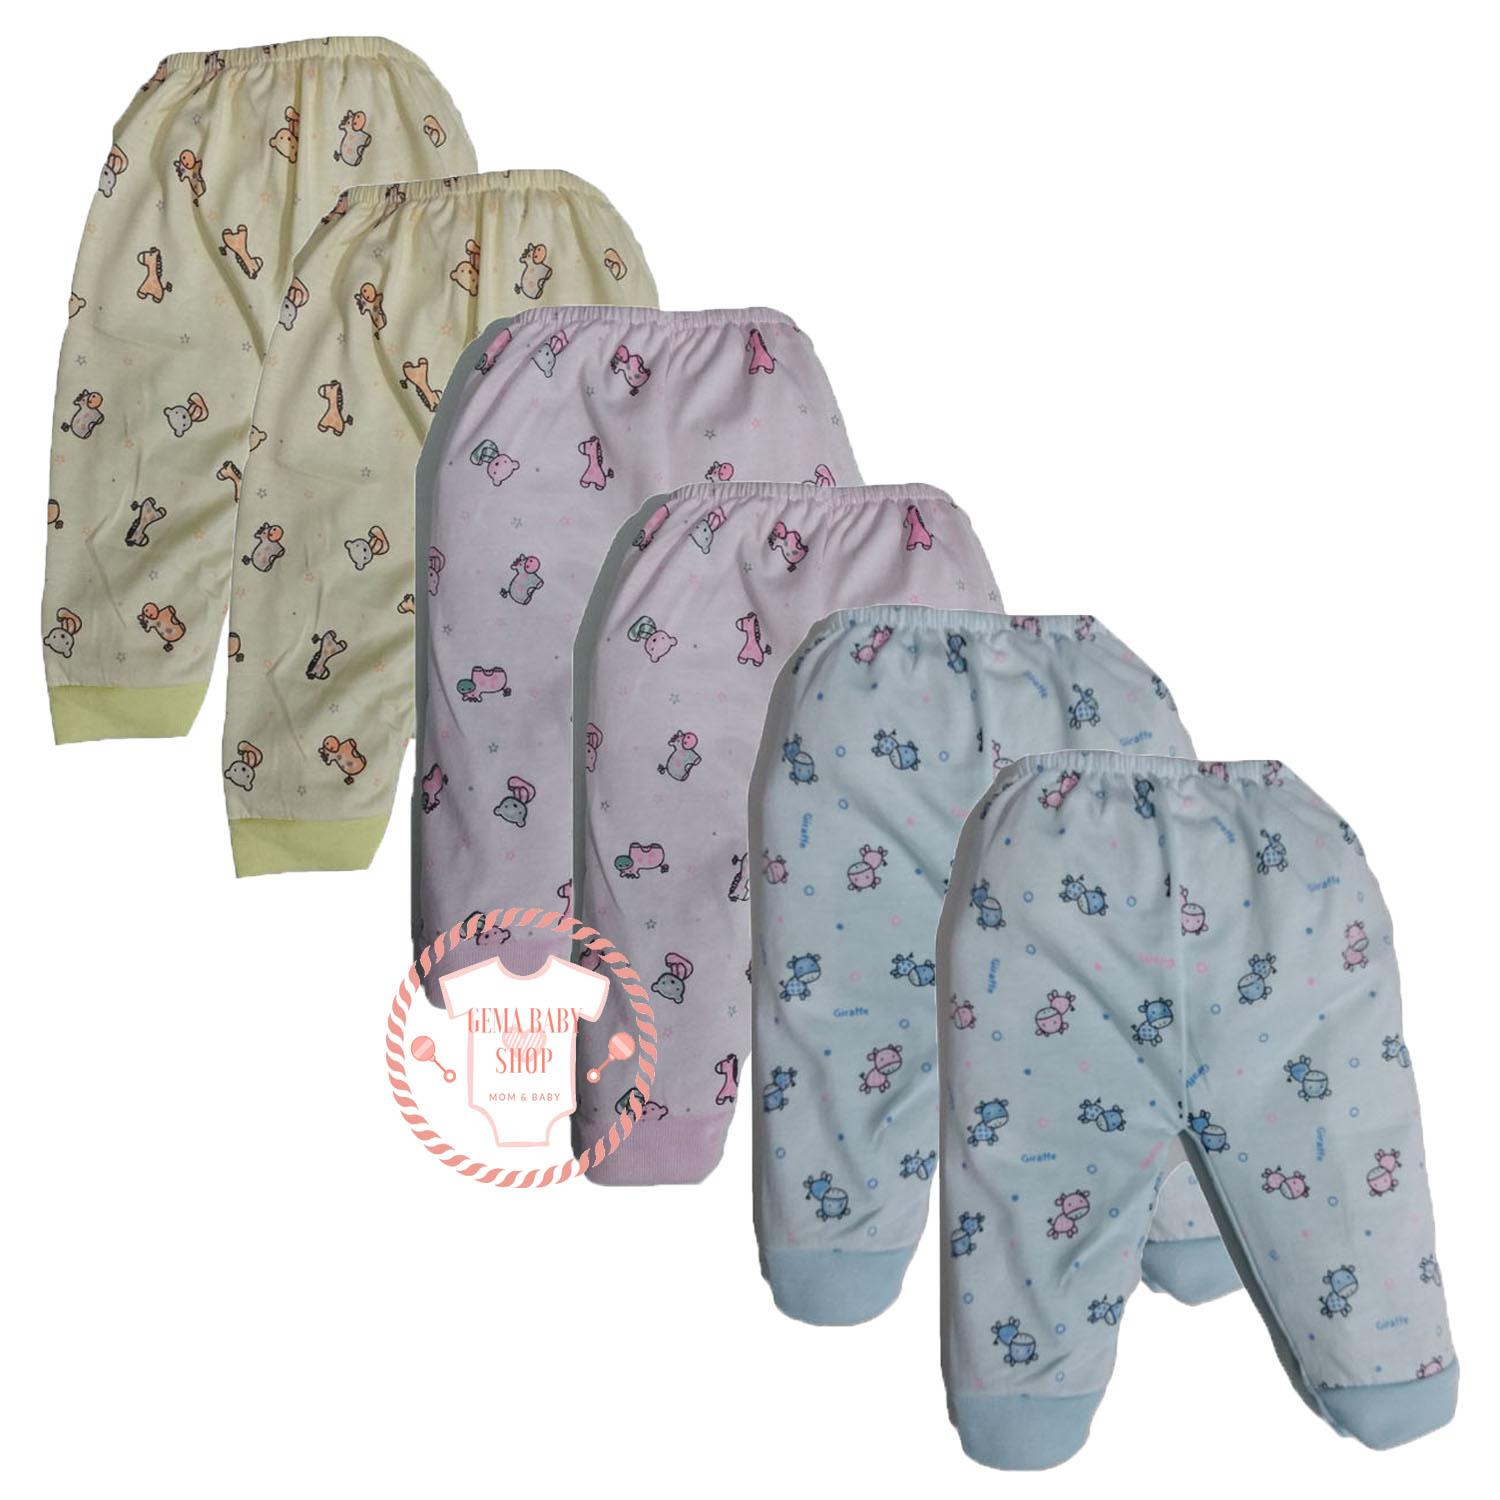 Gema 6pcs Celana Panjang Anak Bayi Warna Motif Catton Happy Time By Gemababy Shop.